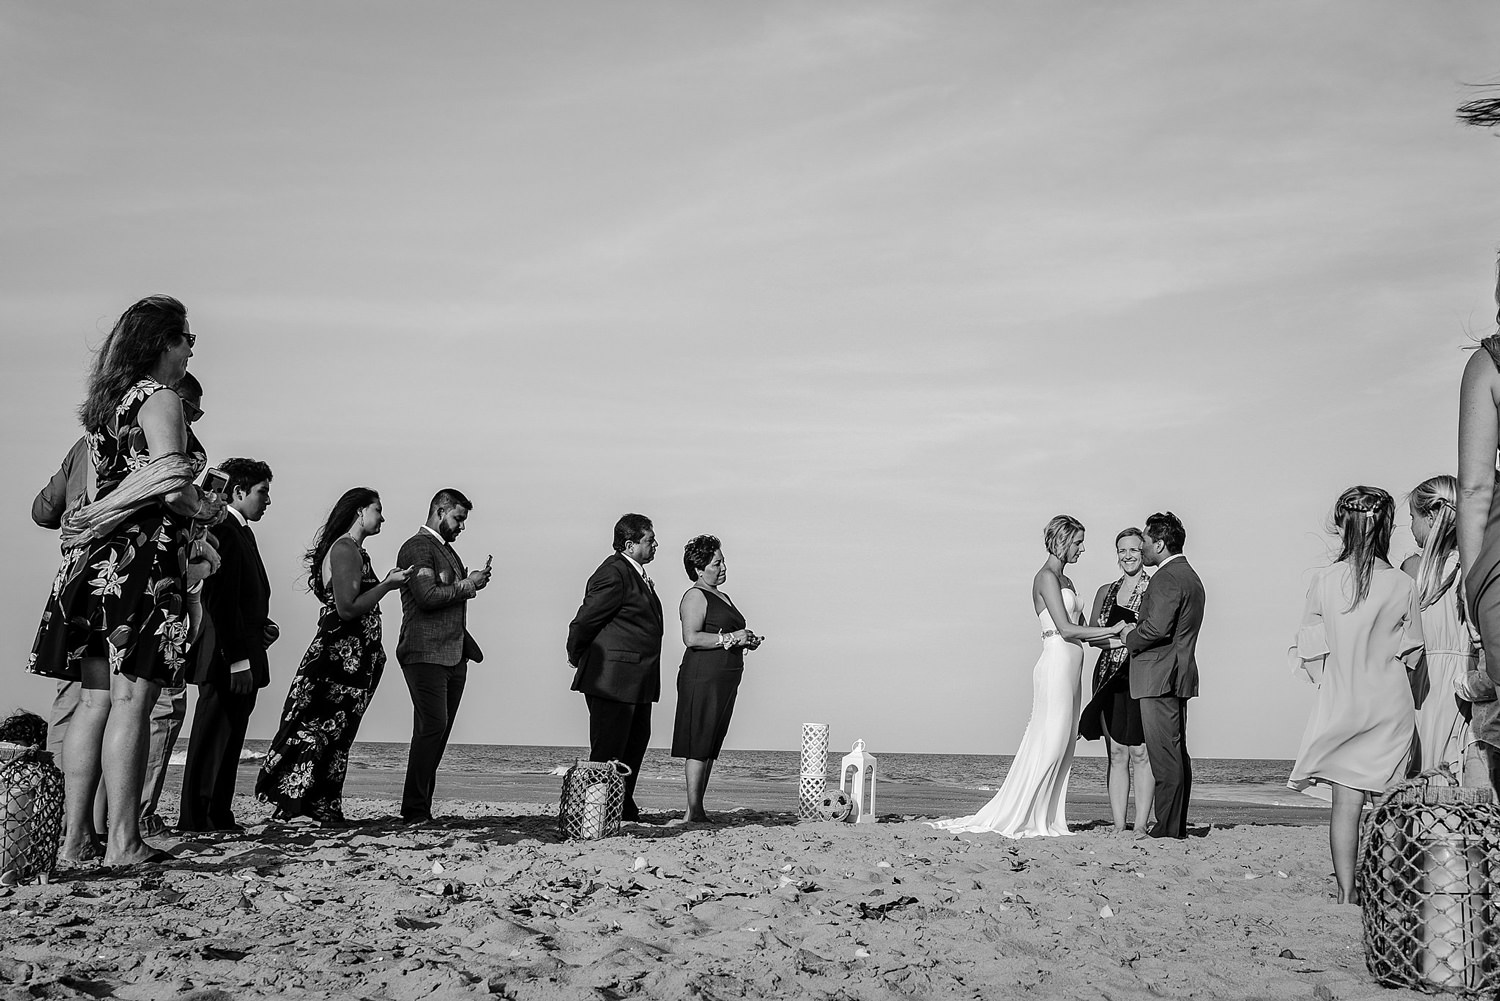 beach-wedding-ceremony-sandbridge-photos-melissa-bliss-photography.jpg